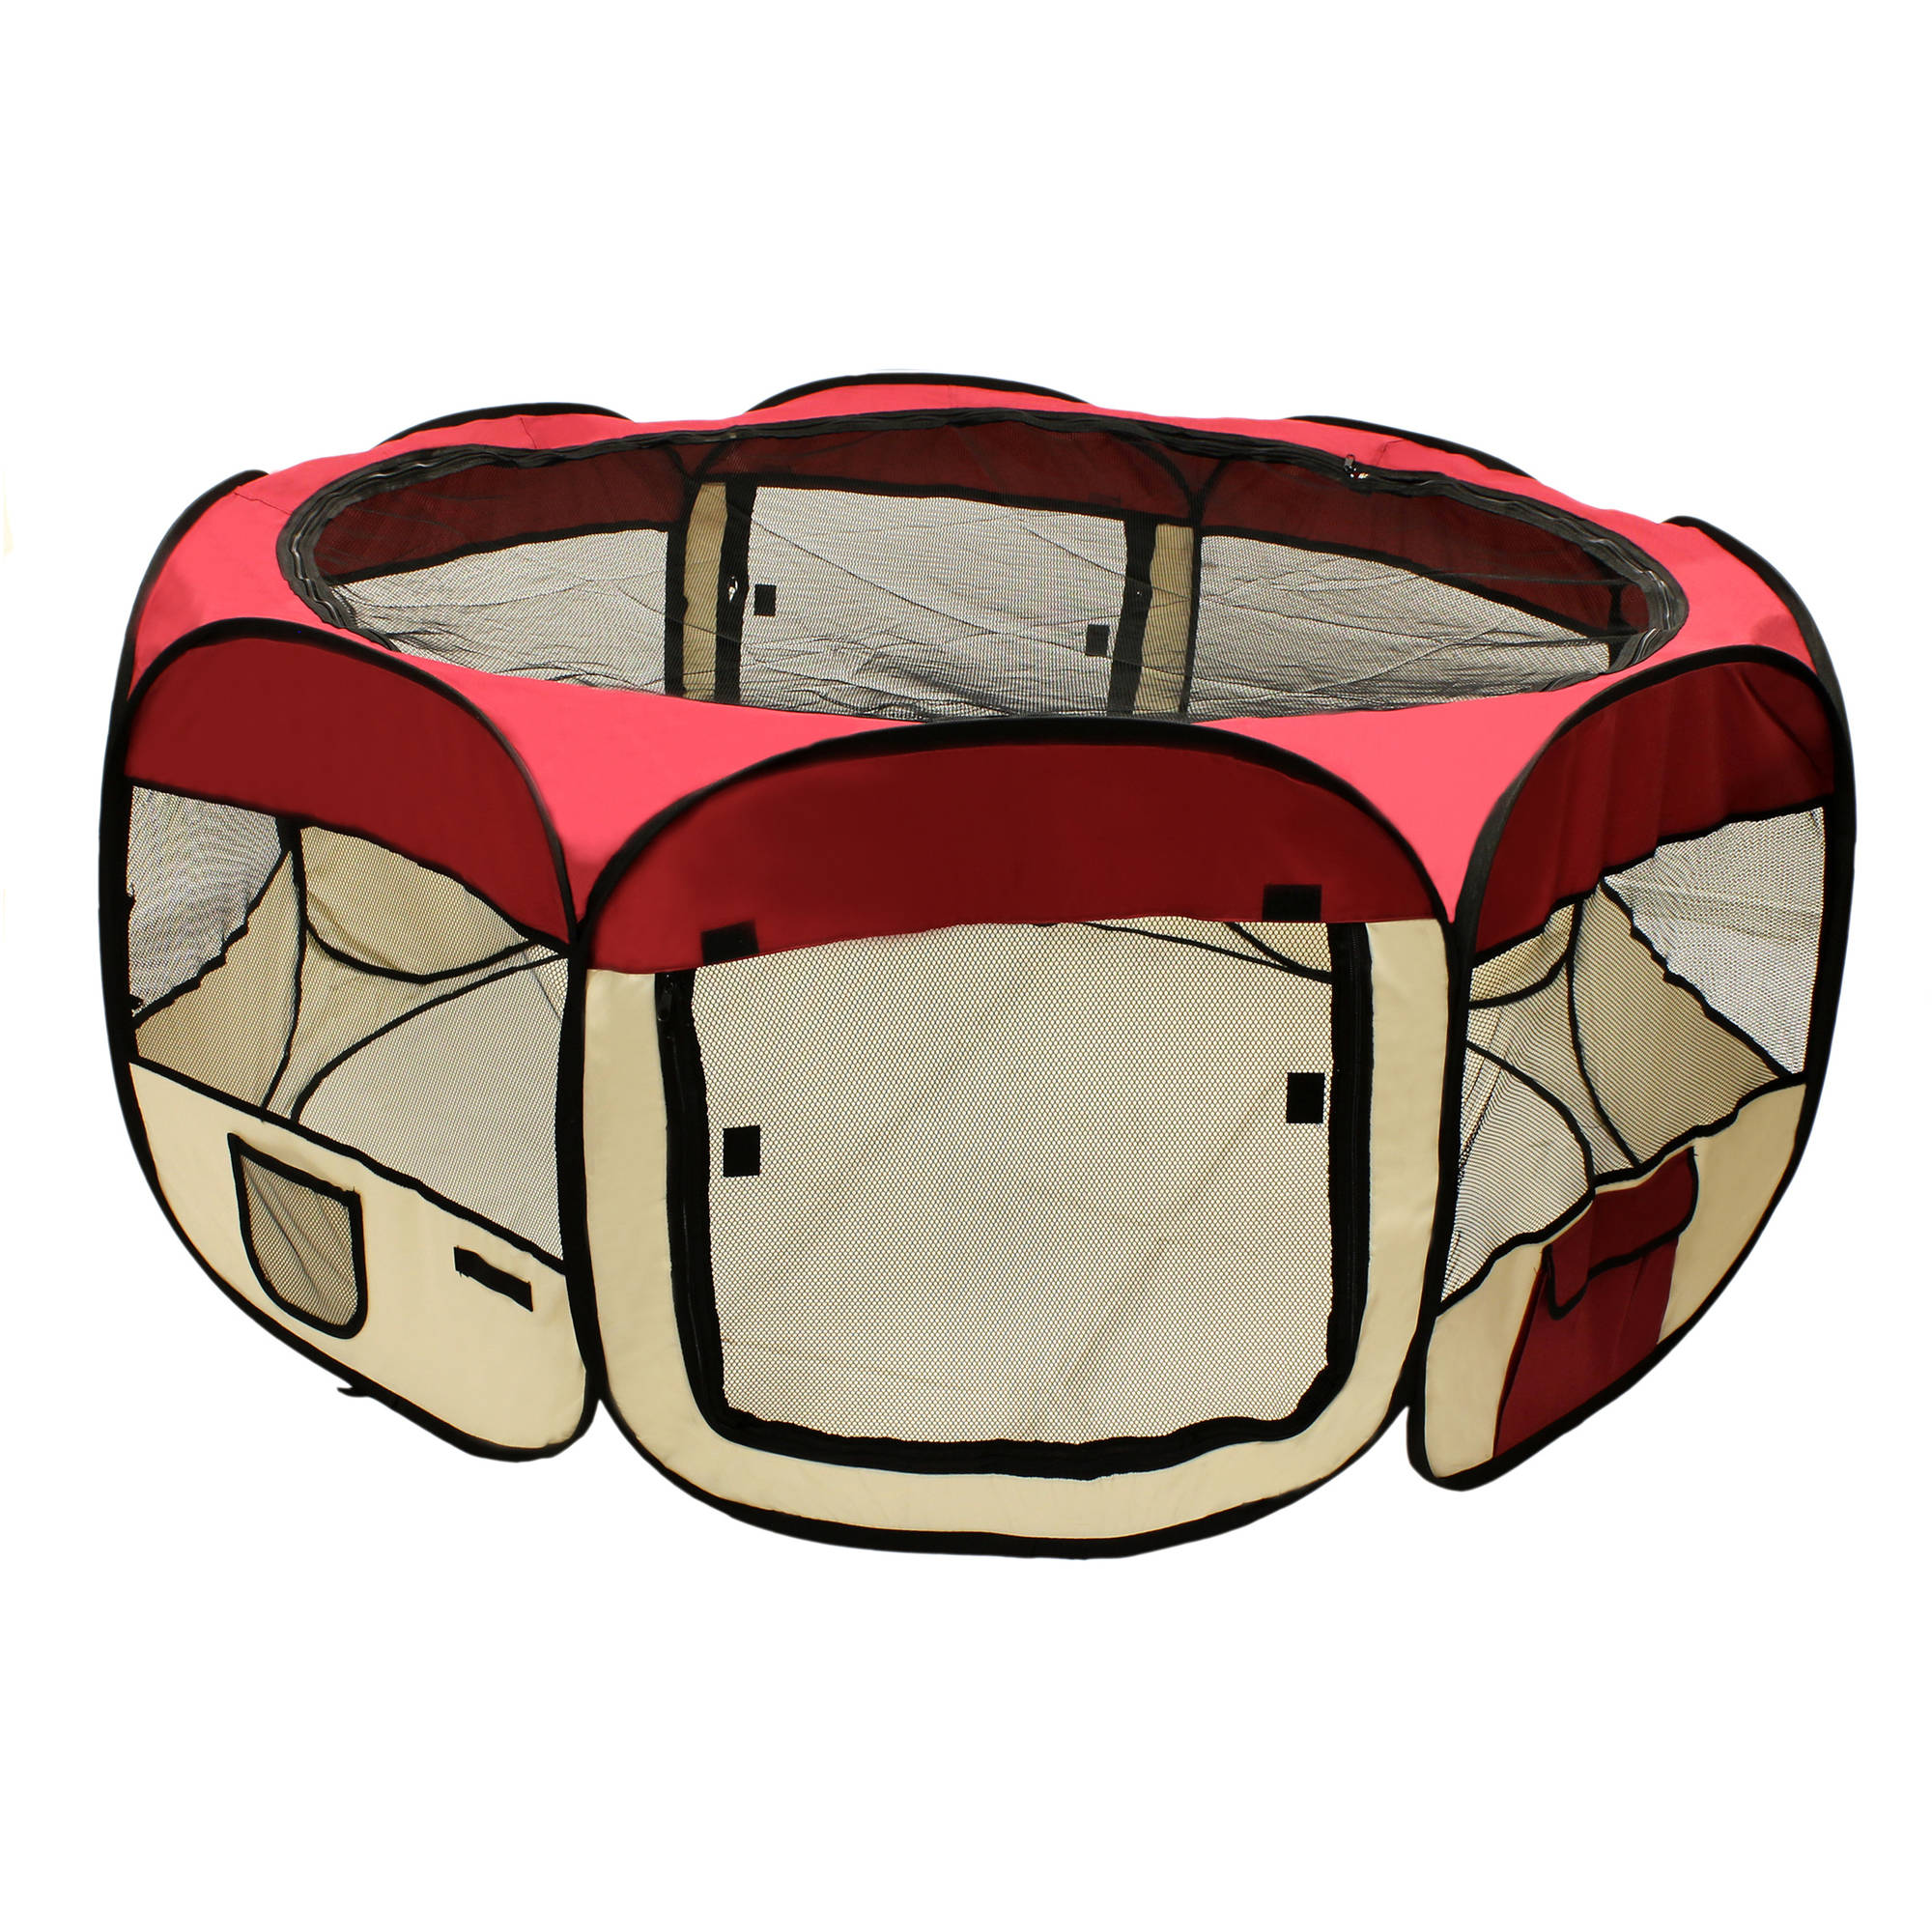 "Aleko DK-49-BG Octagon Pet Playpen Dog Puppy Exercise Kennel, Burgundy, 45"" Diameter X 24"" Height"